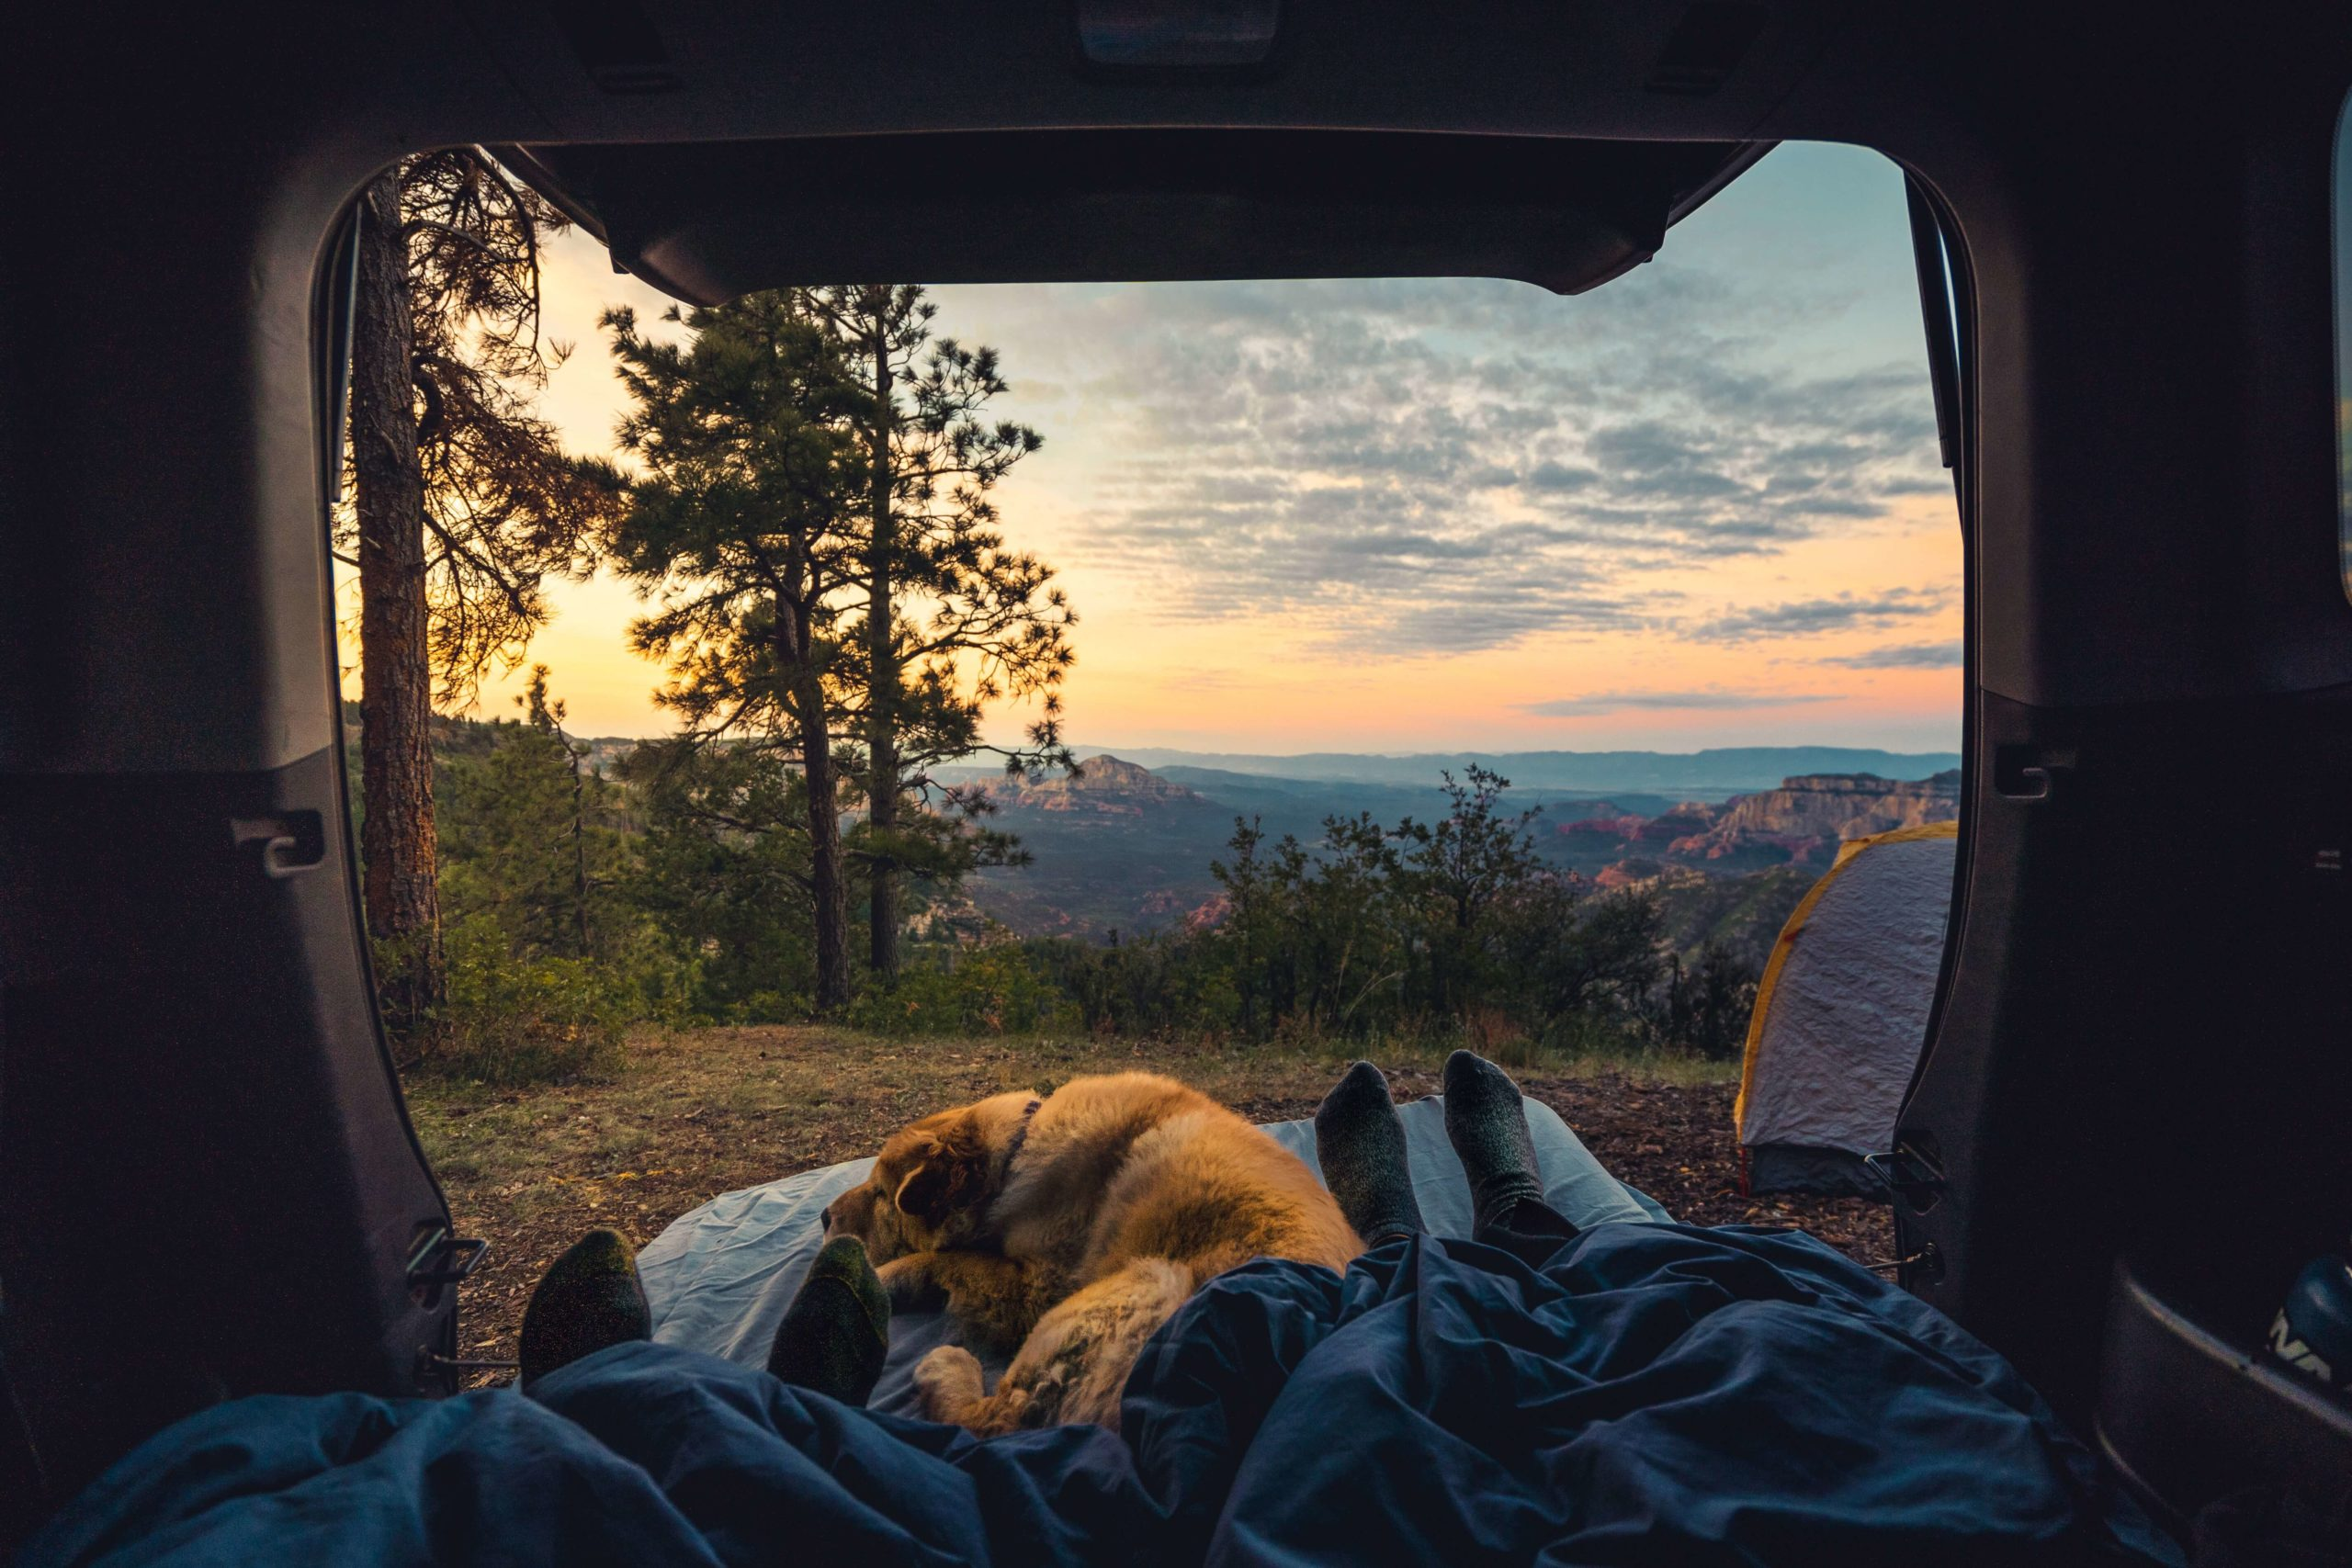 Camping with dogs: Best portable dog fence